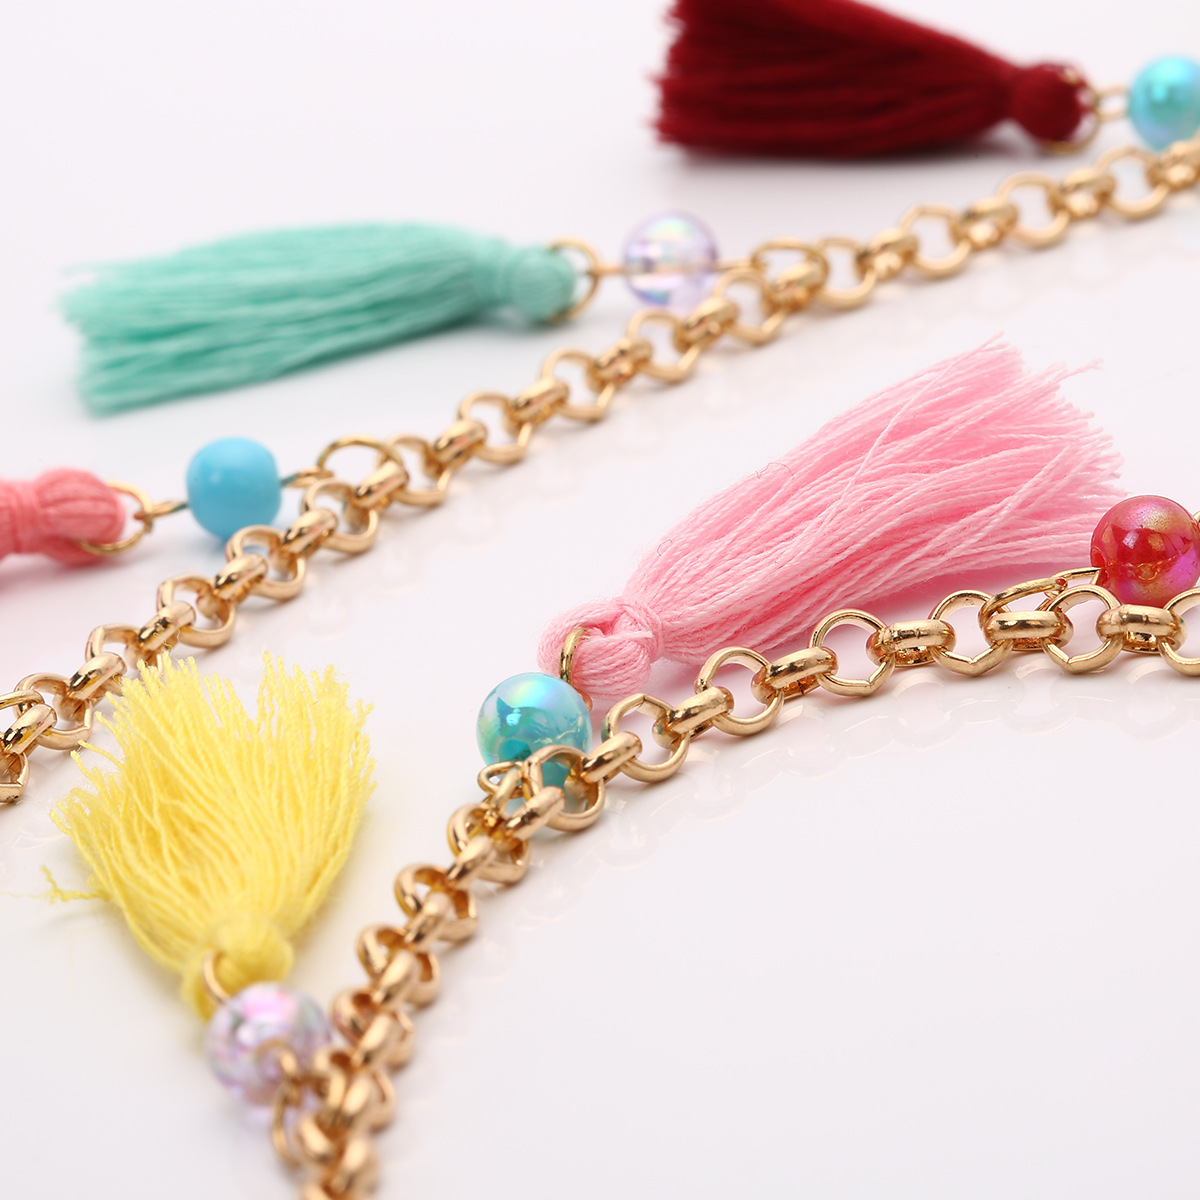 Simple alloy plating necklace (C2197 color)NHXR1494-C2197 color